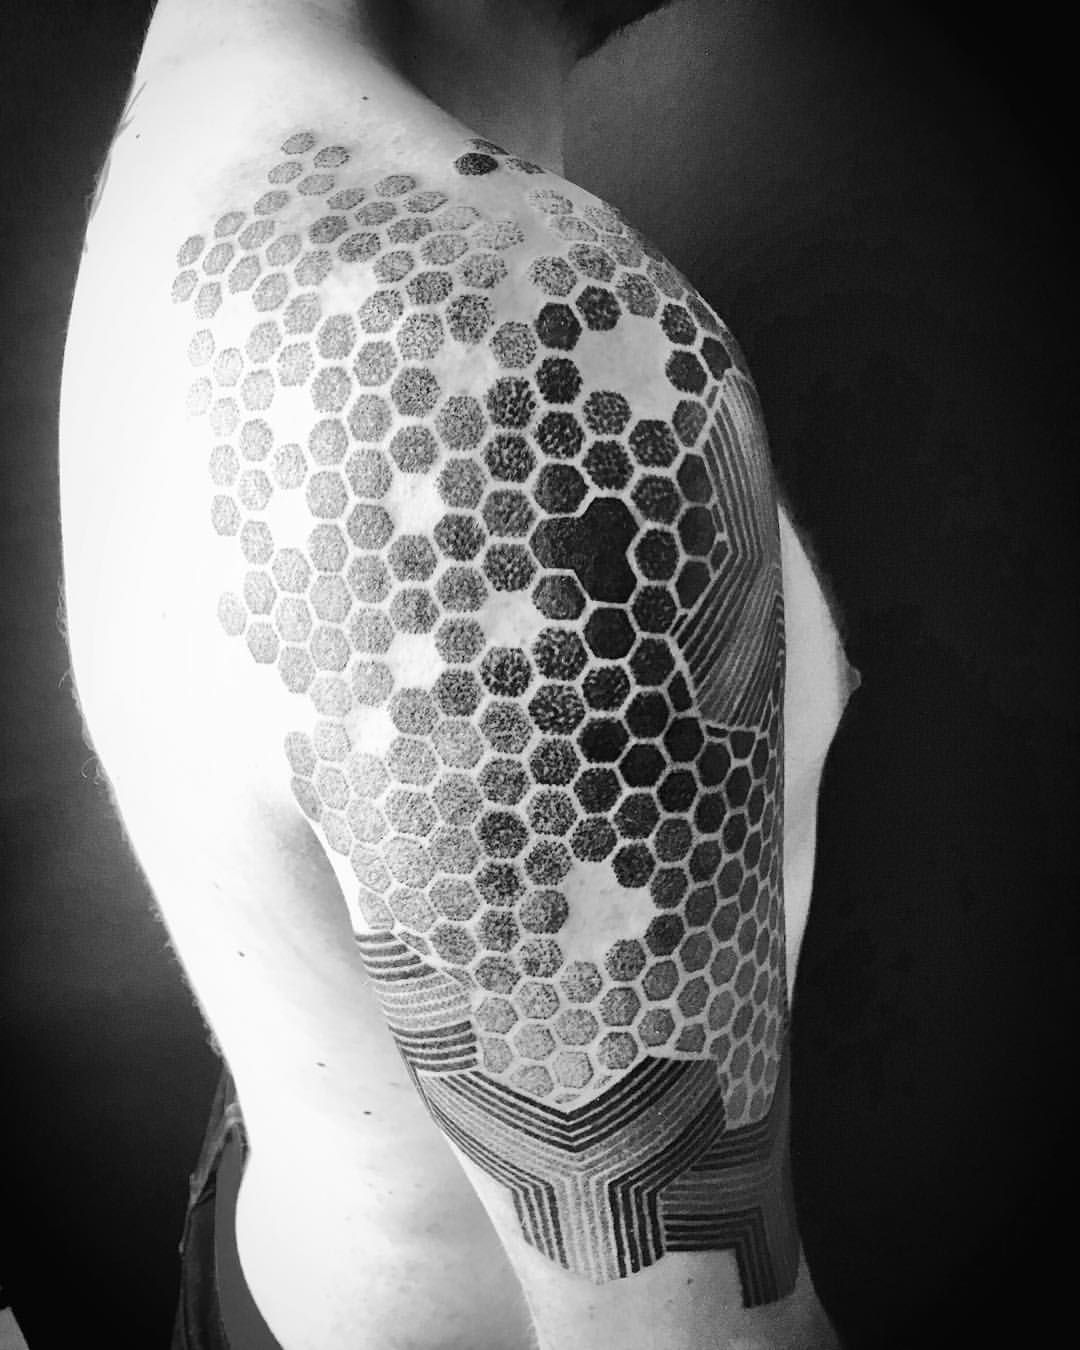 Honeycomb Bee Tattoo Pinterest Tattoos And Electronic Circuit Board Full Sleeve Blackwork Male Best Dad Cool